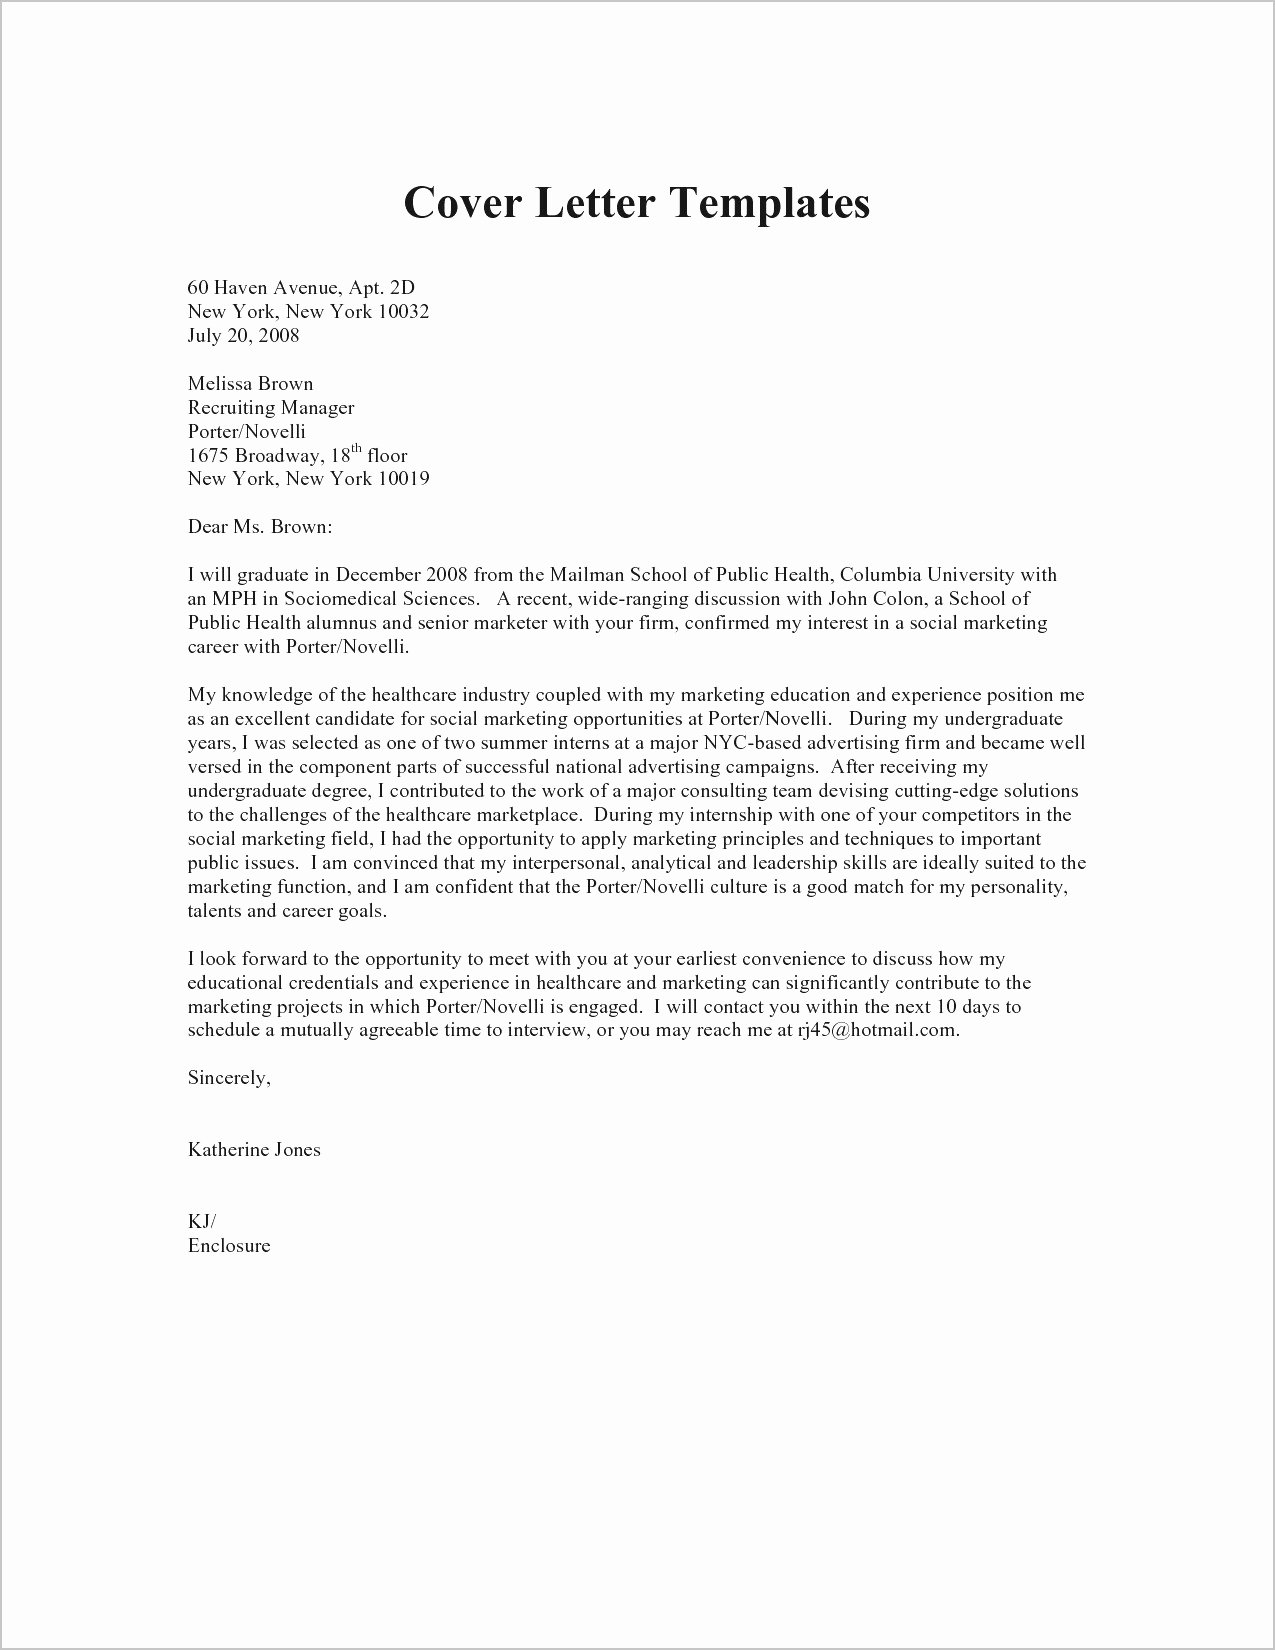 Transfer Of Ownership Template Inspirational Transfer Ownership Letter Template Samples